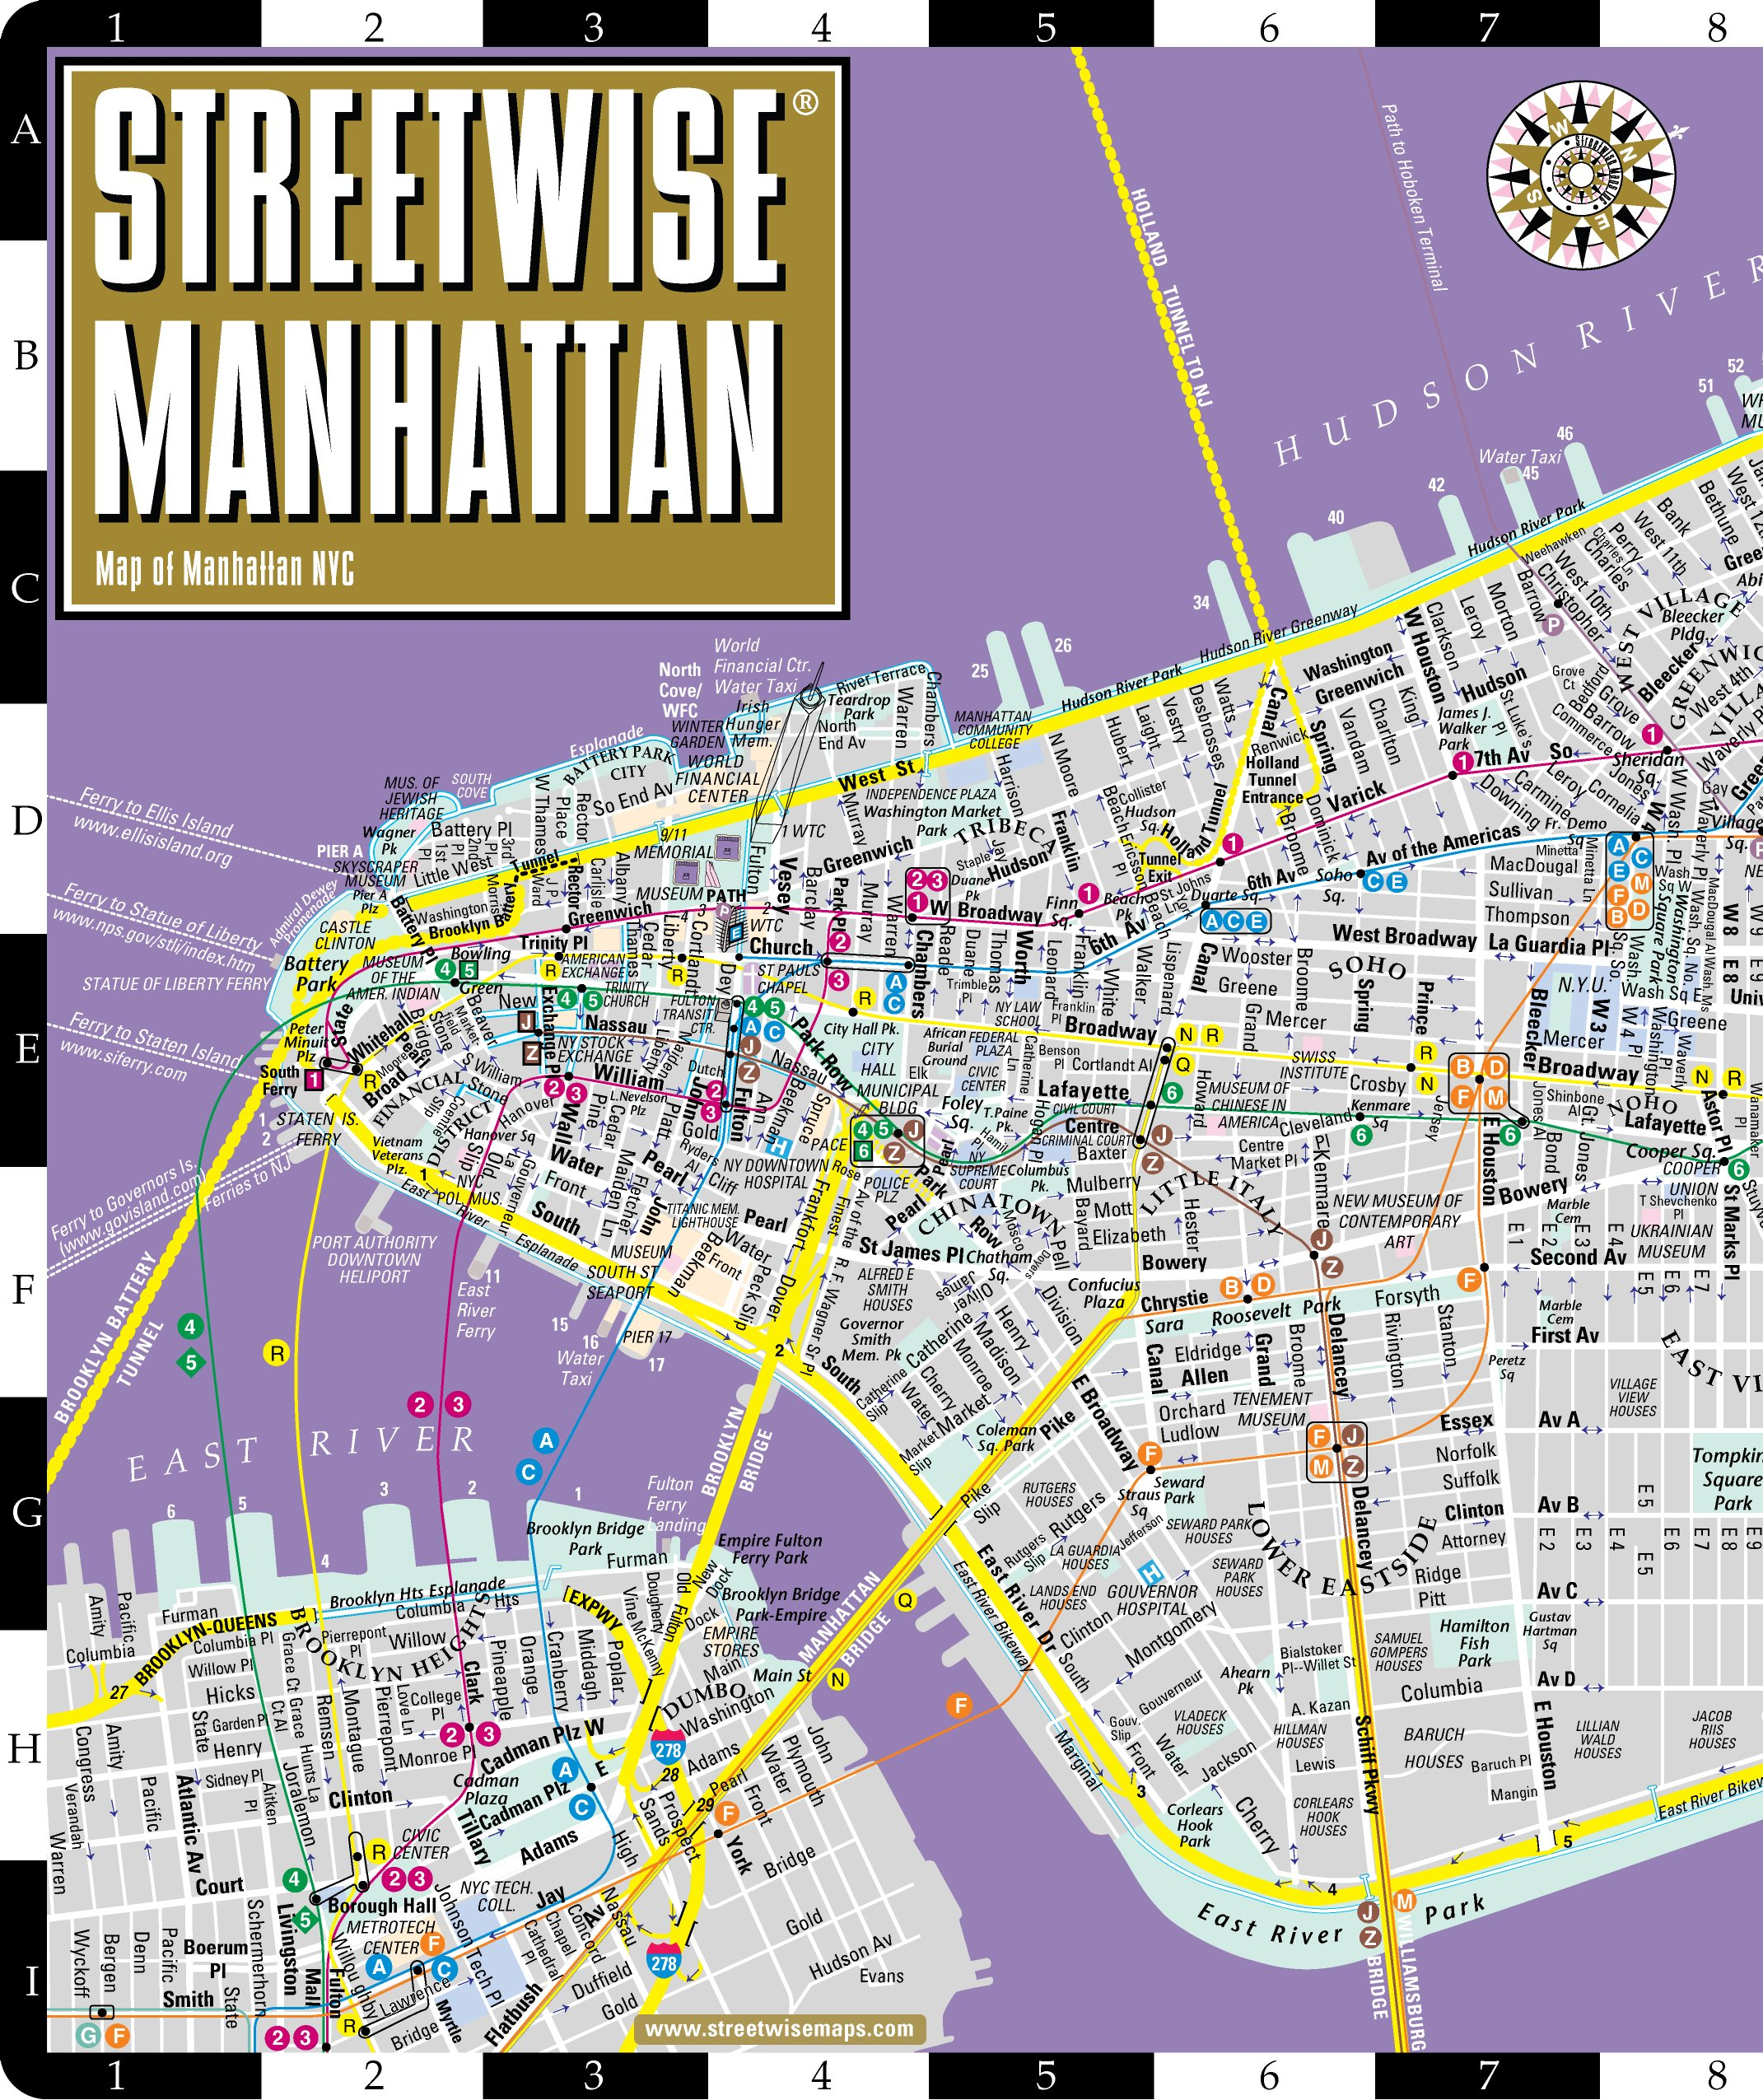 Streetwise Manhattan Map Laminated City Street Map of Manhattan